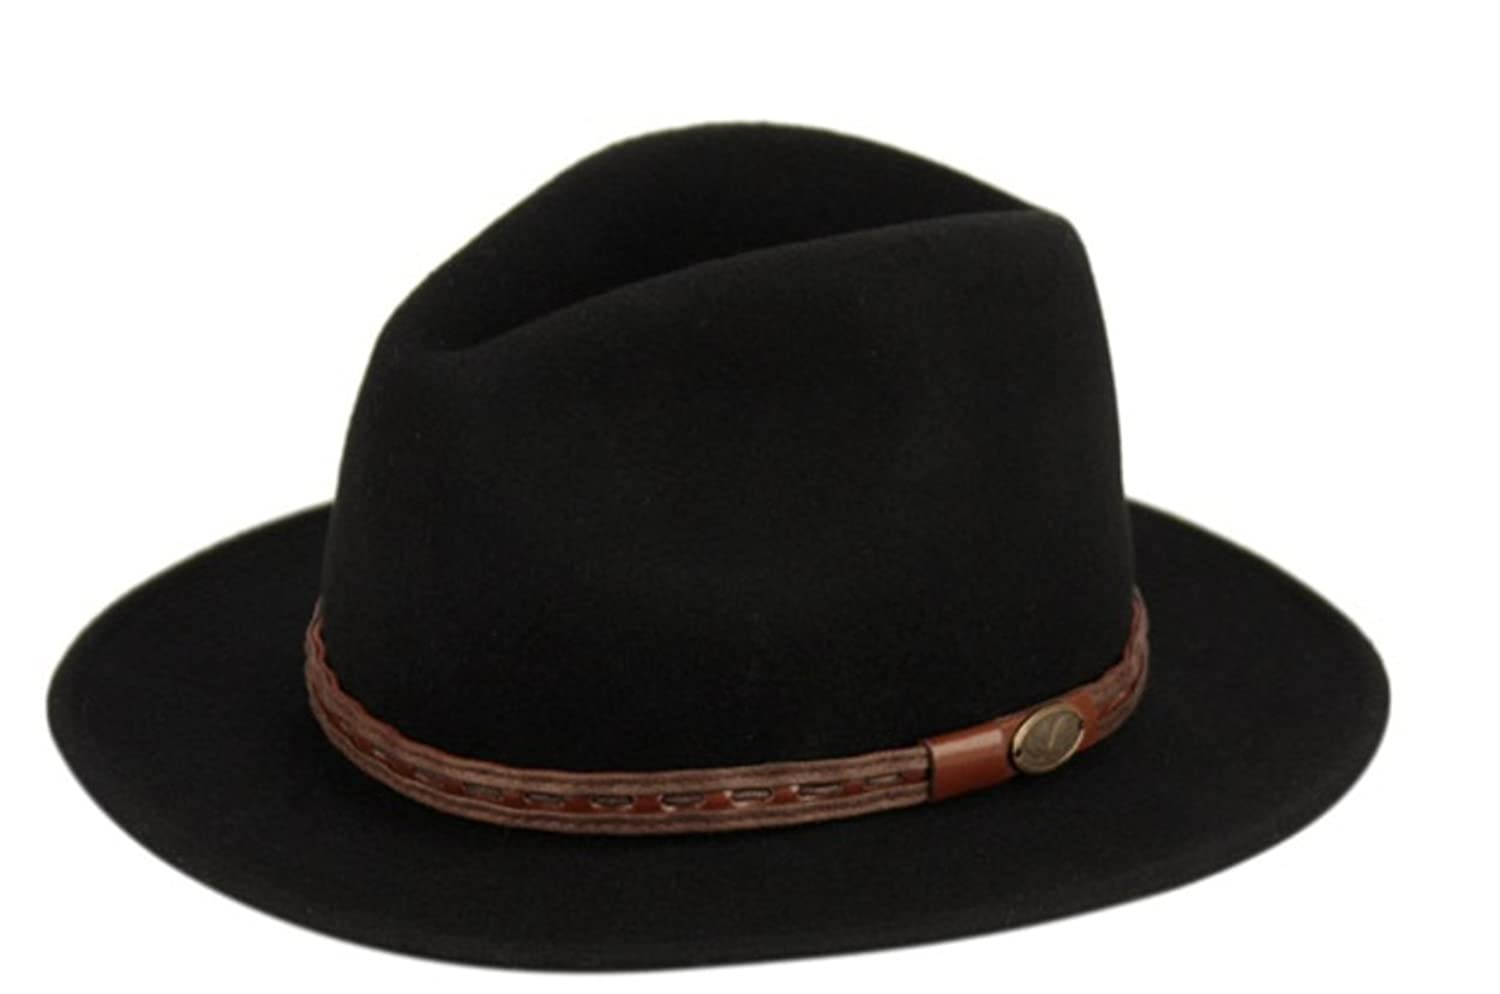 bff020cae Men's Crush-able Wool Felt Outback Wide Brim Classic Safari Leather Fedora  Hats